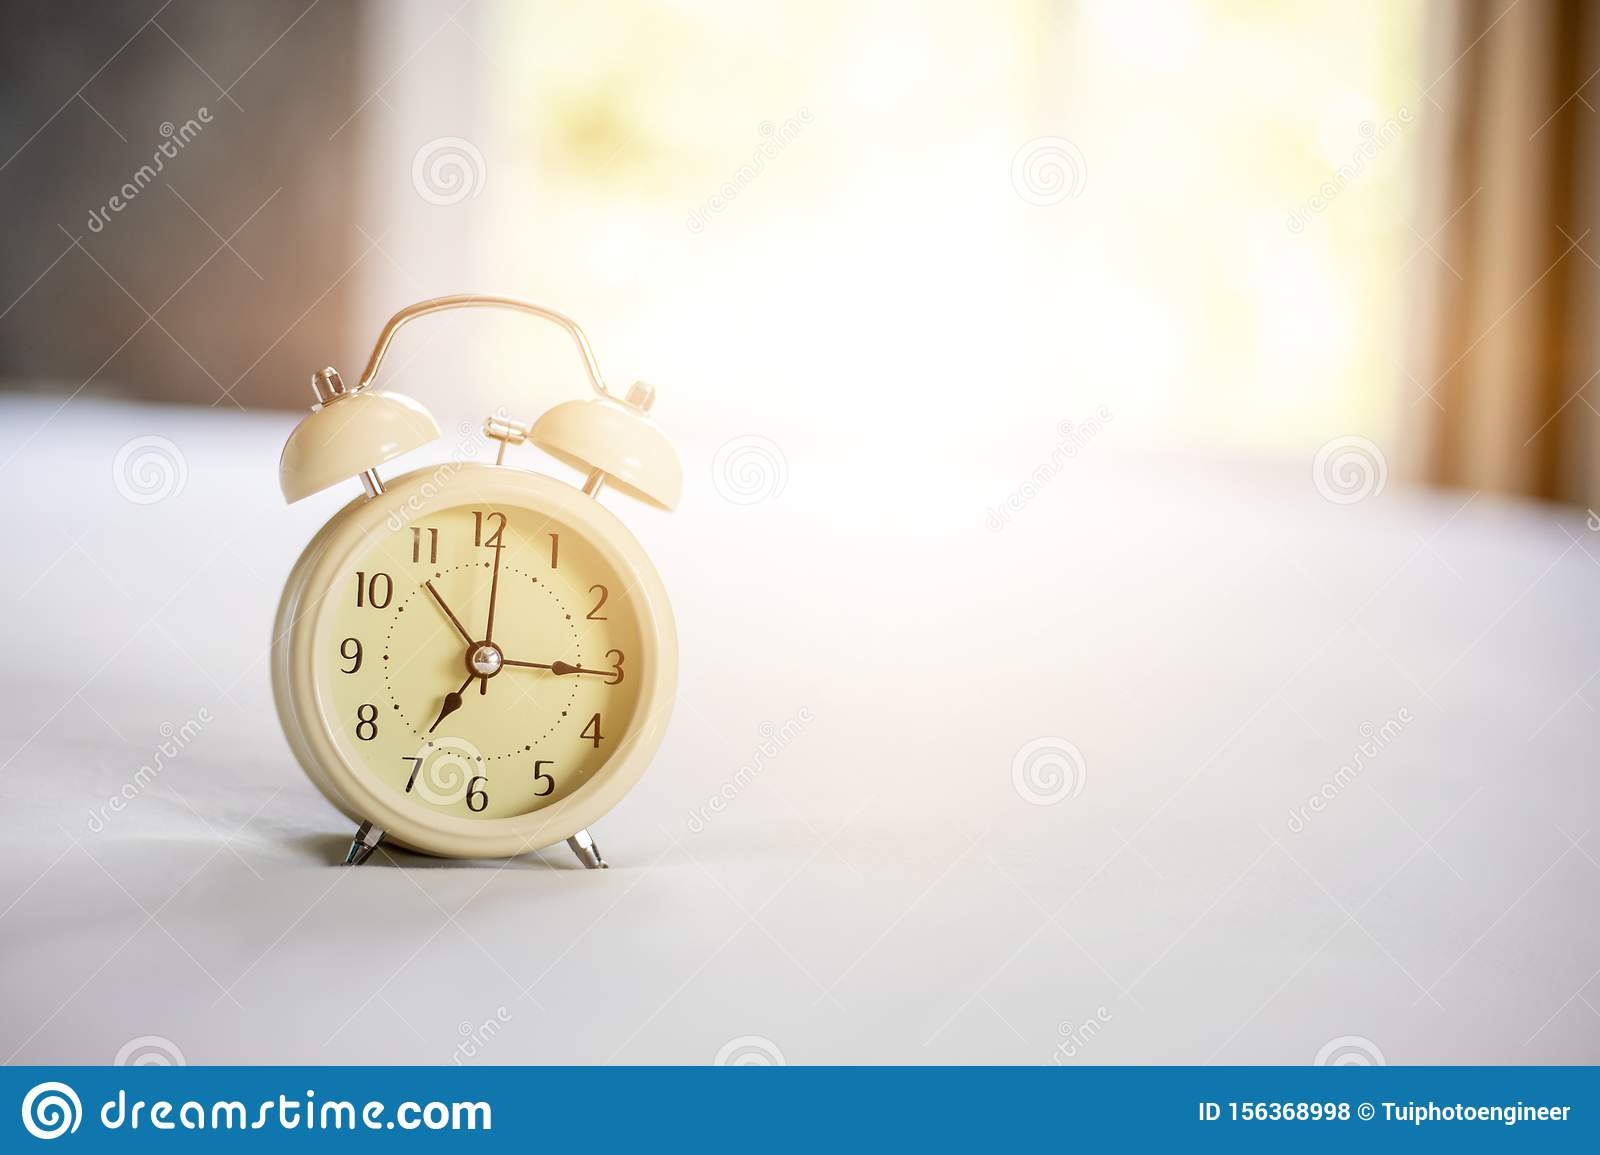 Analog alarm clock on white bed, time in the morning with a bright sunshine